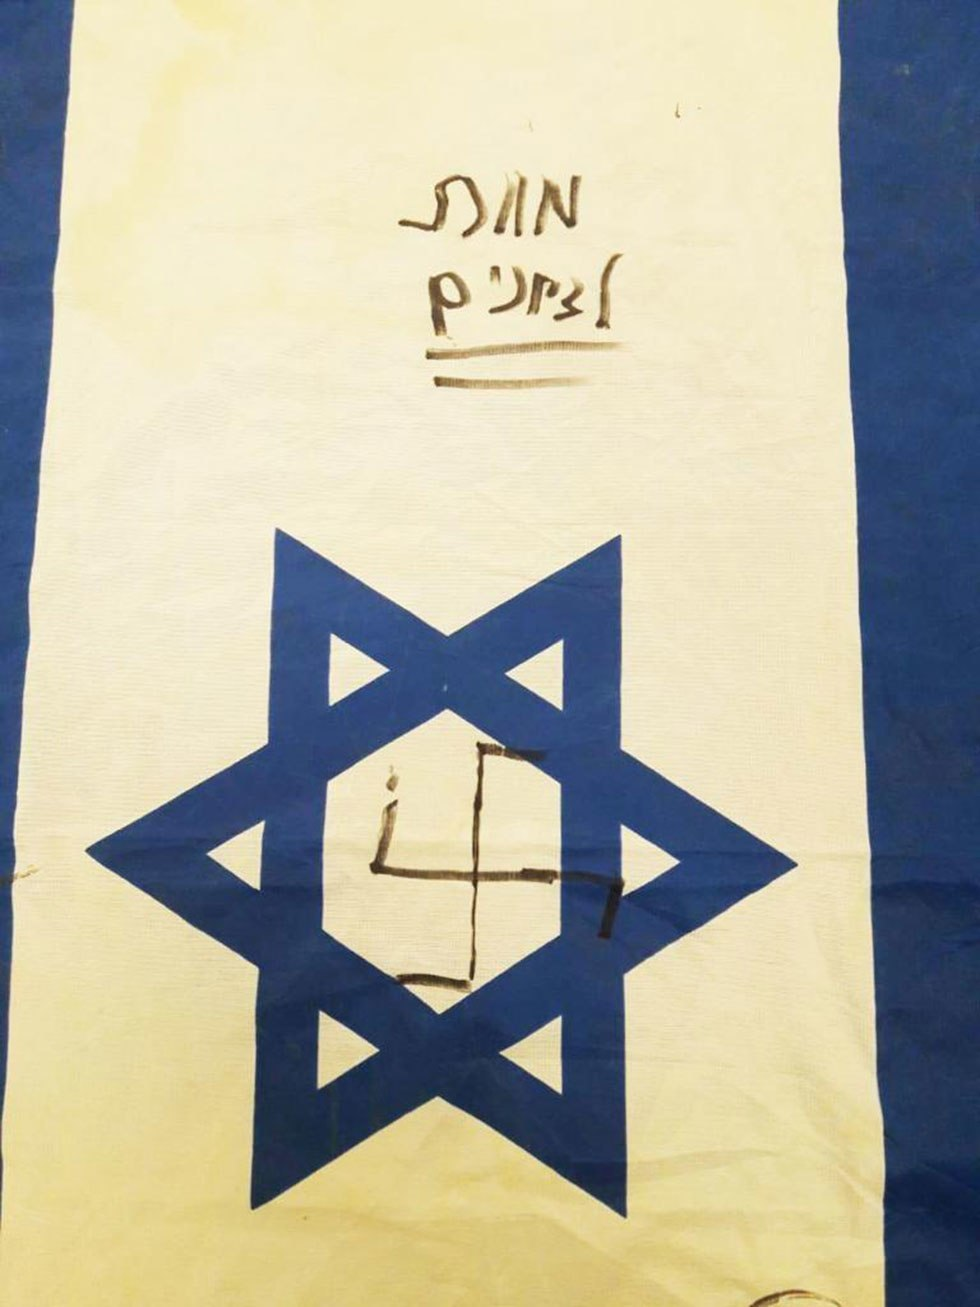 Israeli flag with Nazi slogans confiscated by Shin Bet  (Photo: Shin Bet media)